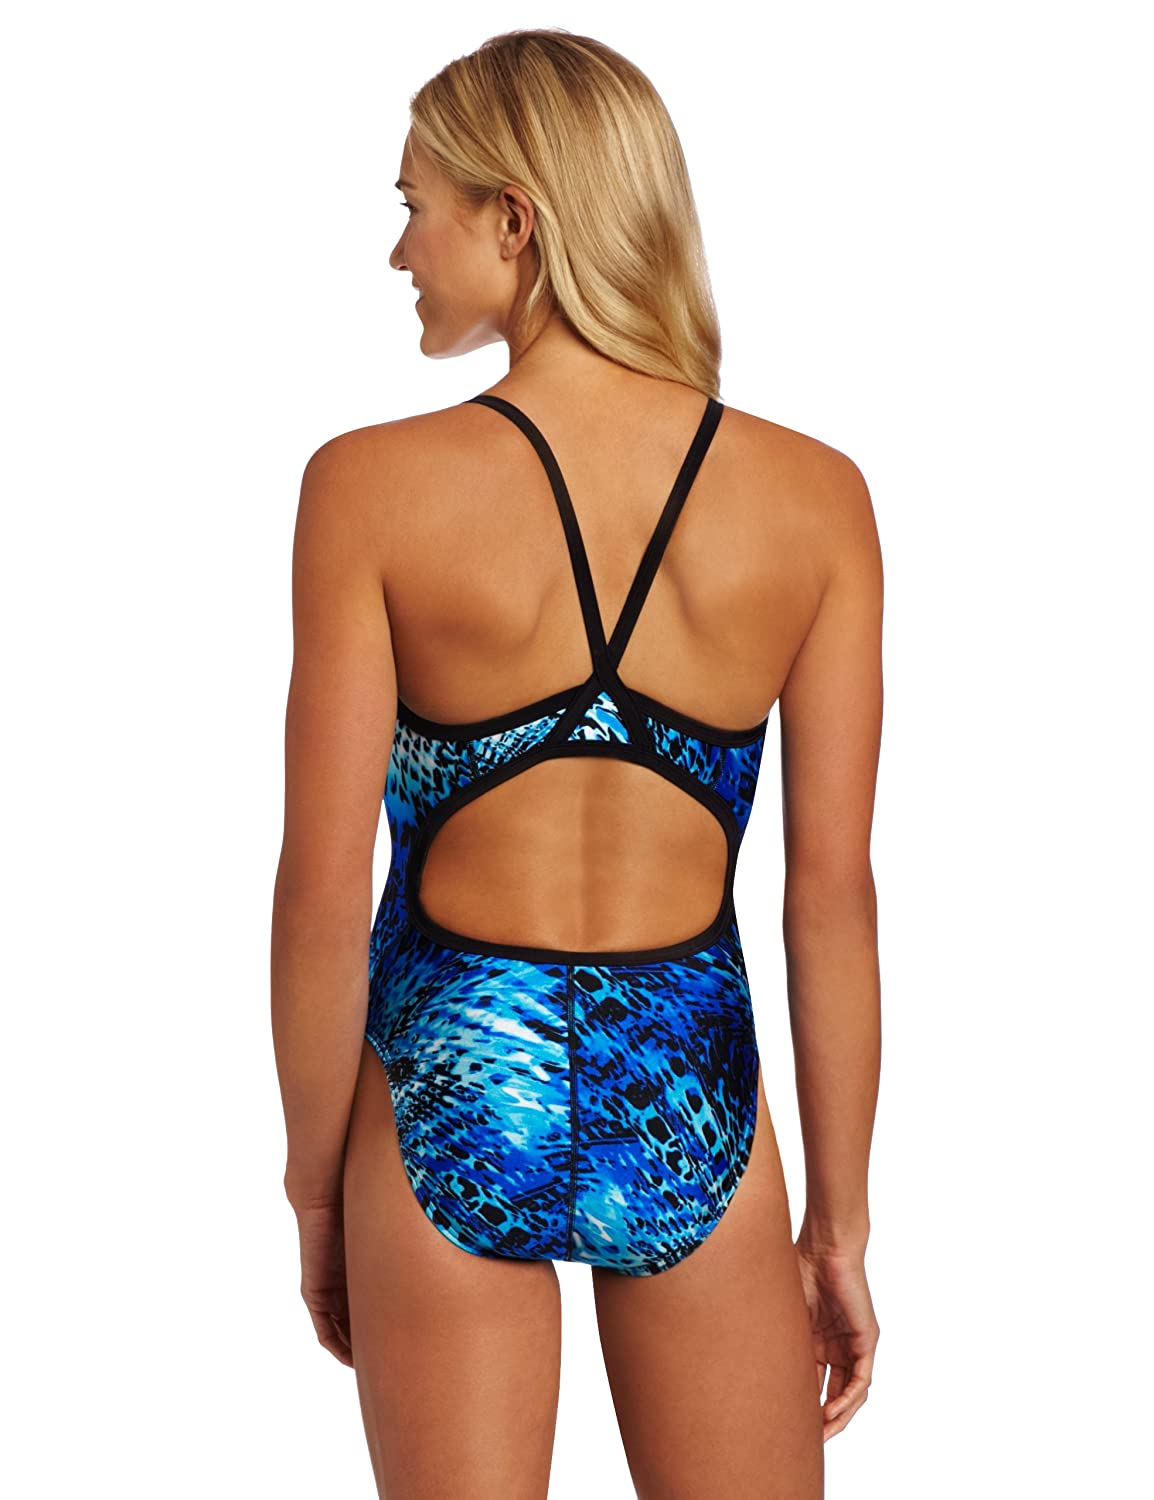 Amazon.com : Speedo Womens Primal Splice Flyback Life Lycra Swimsuit : Athletic One Piece Swimsuits : Sports & Outdoors